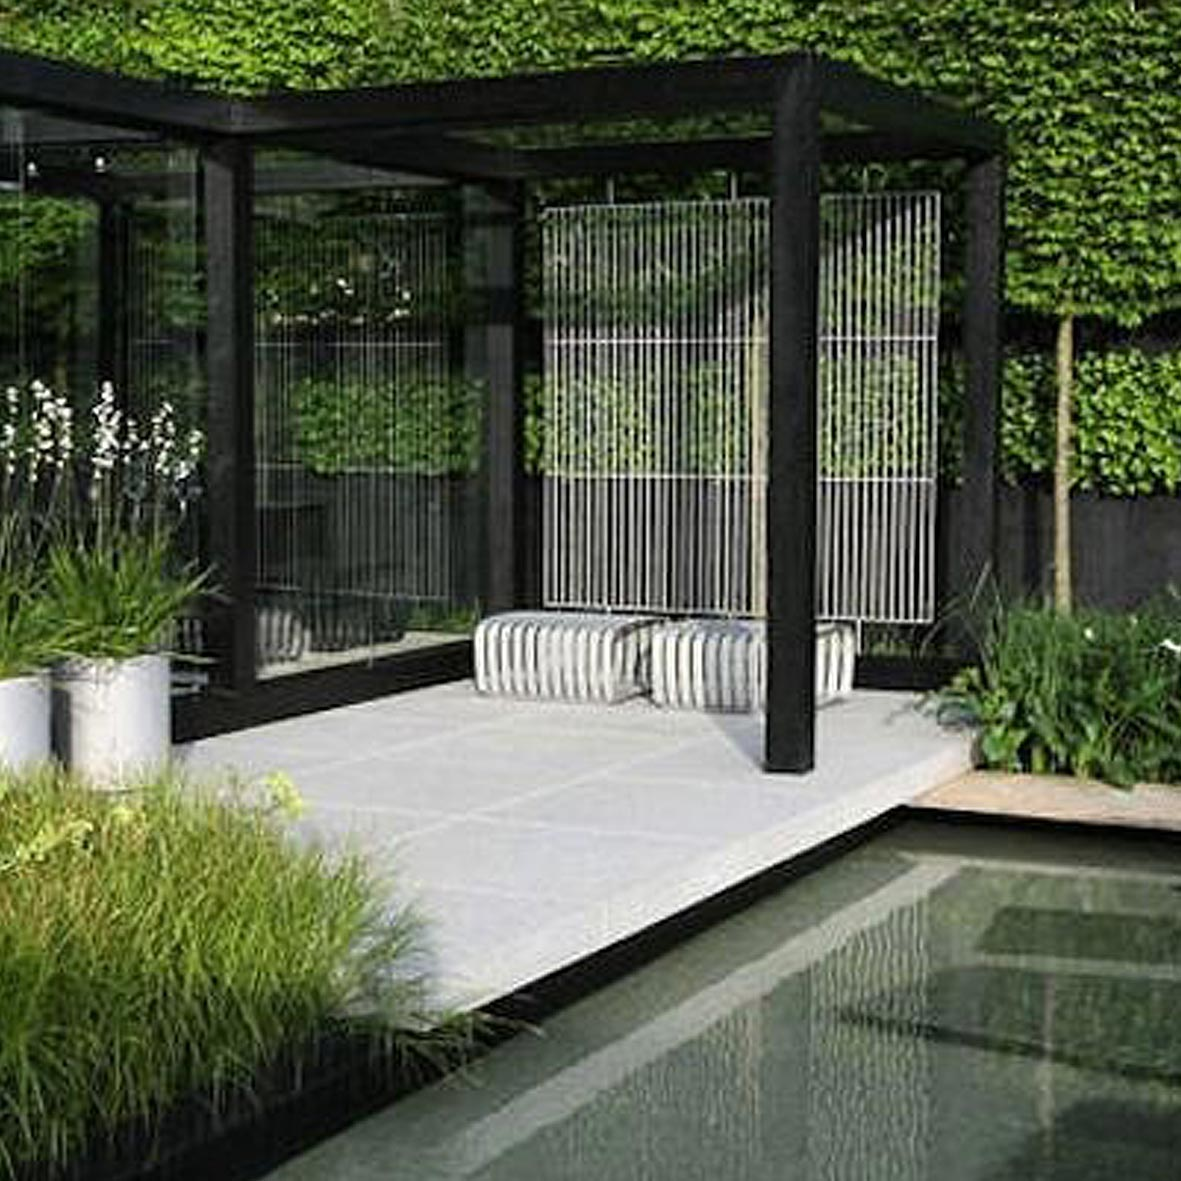 SISJ LIFESTYLE MODERN GARDEN DESIGN She is Sarah Jane